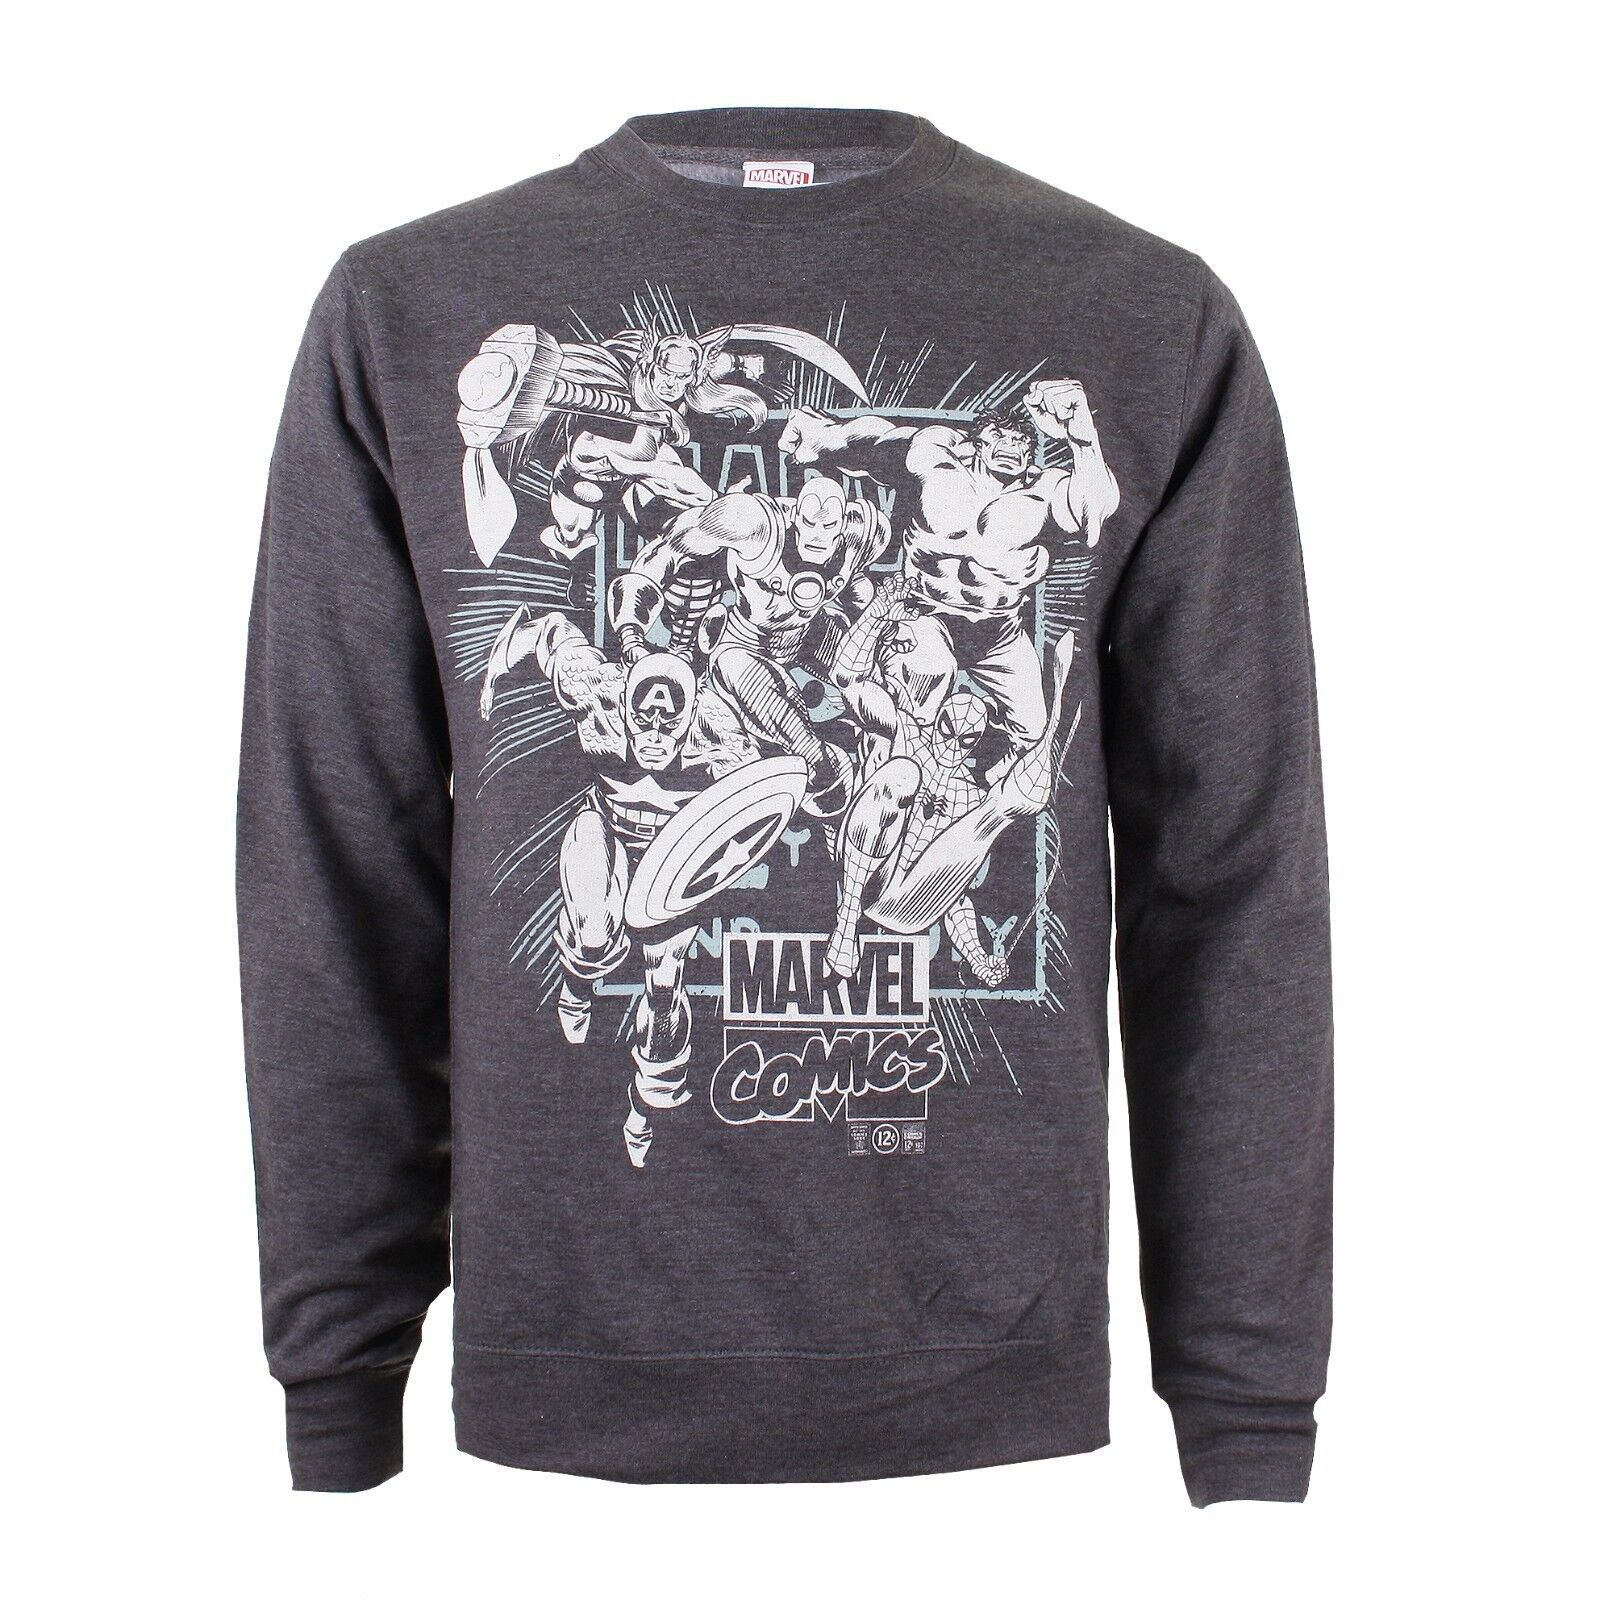 Details about Mens Marvel Avengers Band of Heroes Crew Neck Sweat Jumper Sizes S XXL